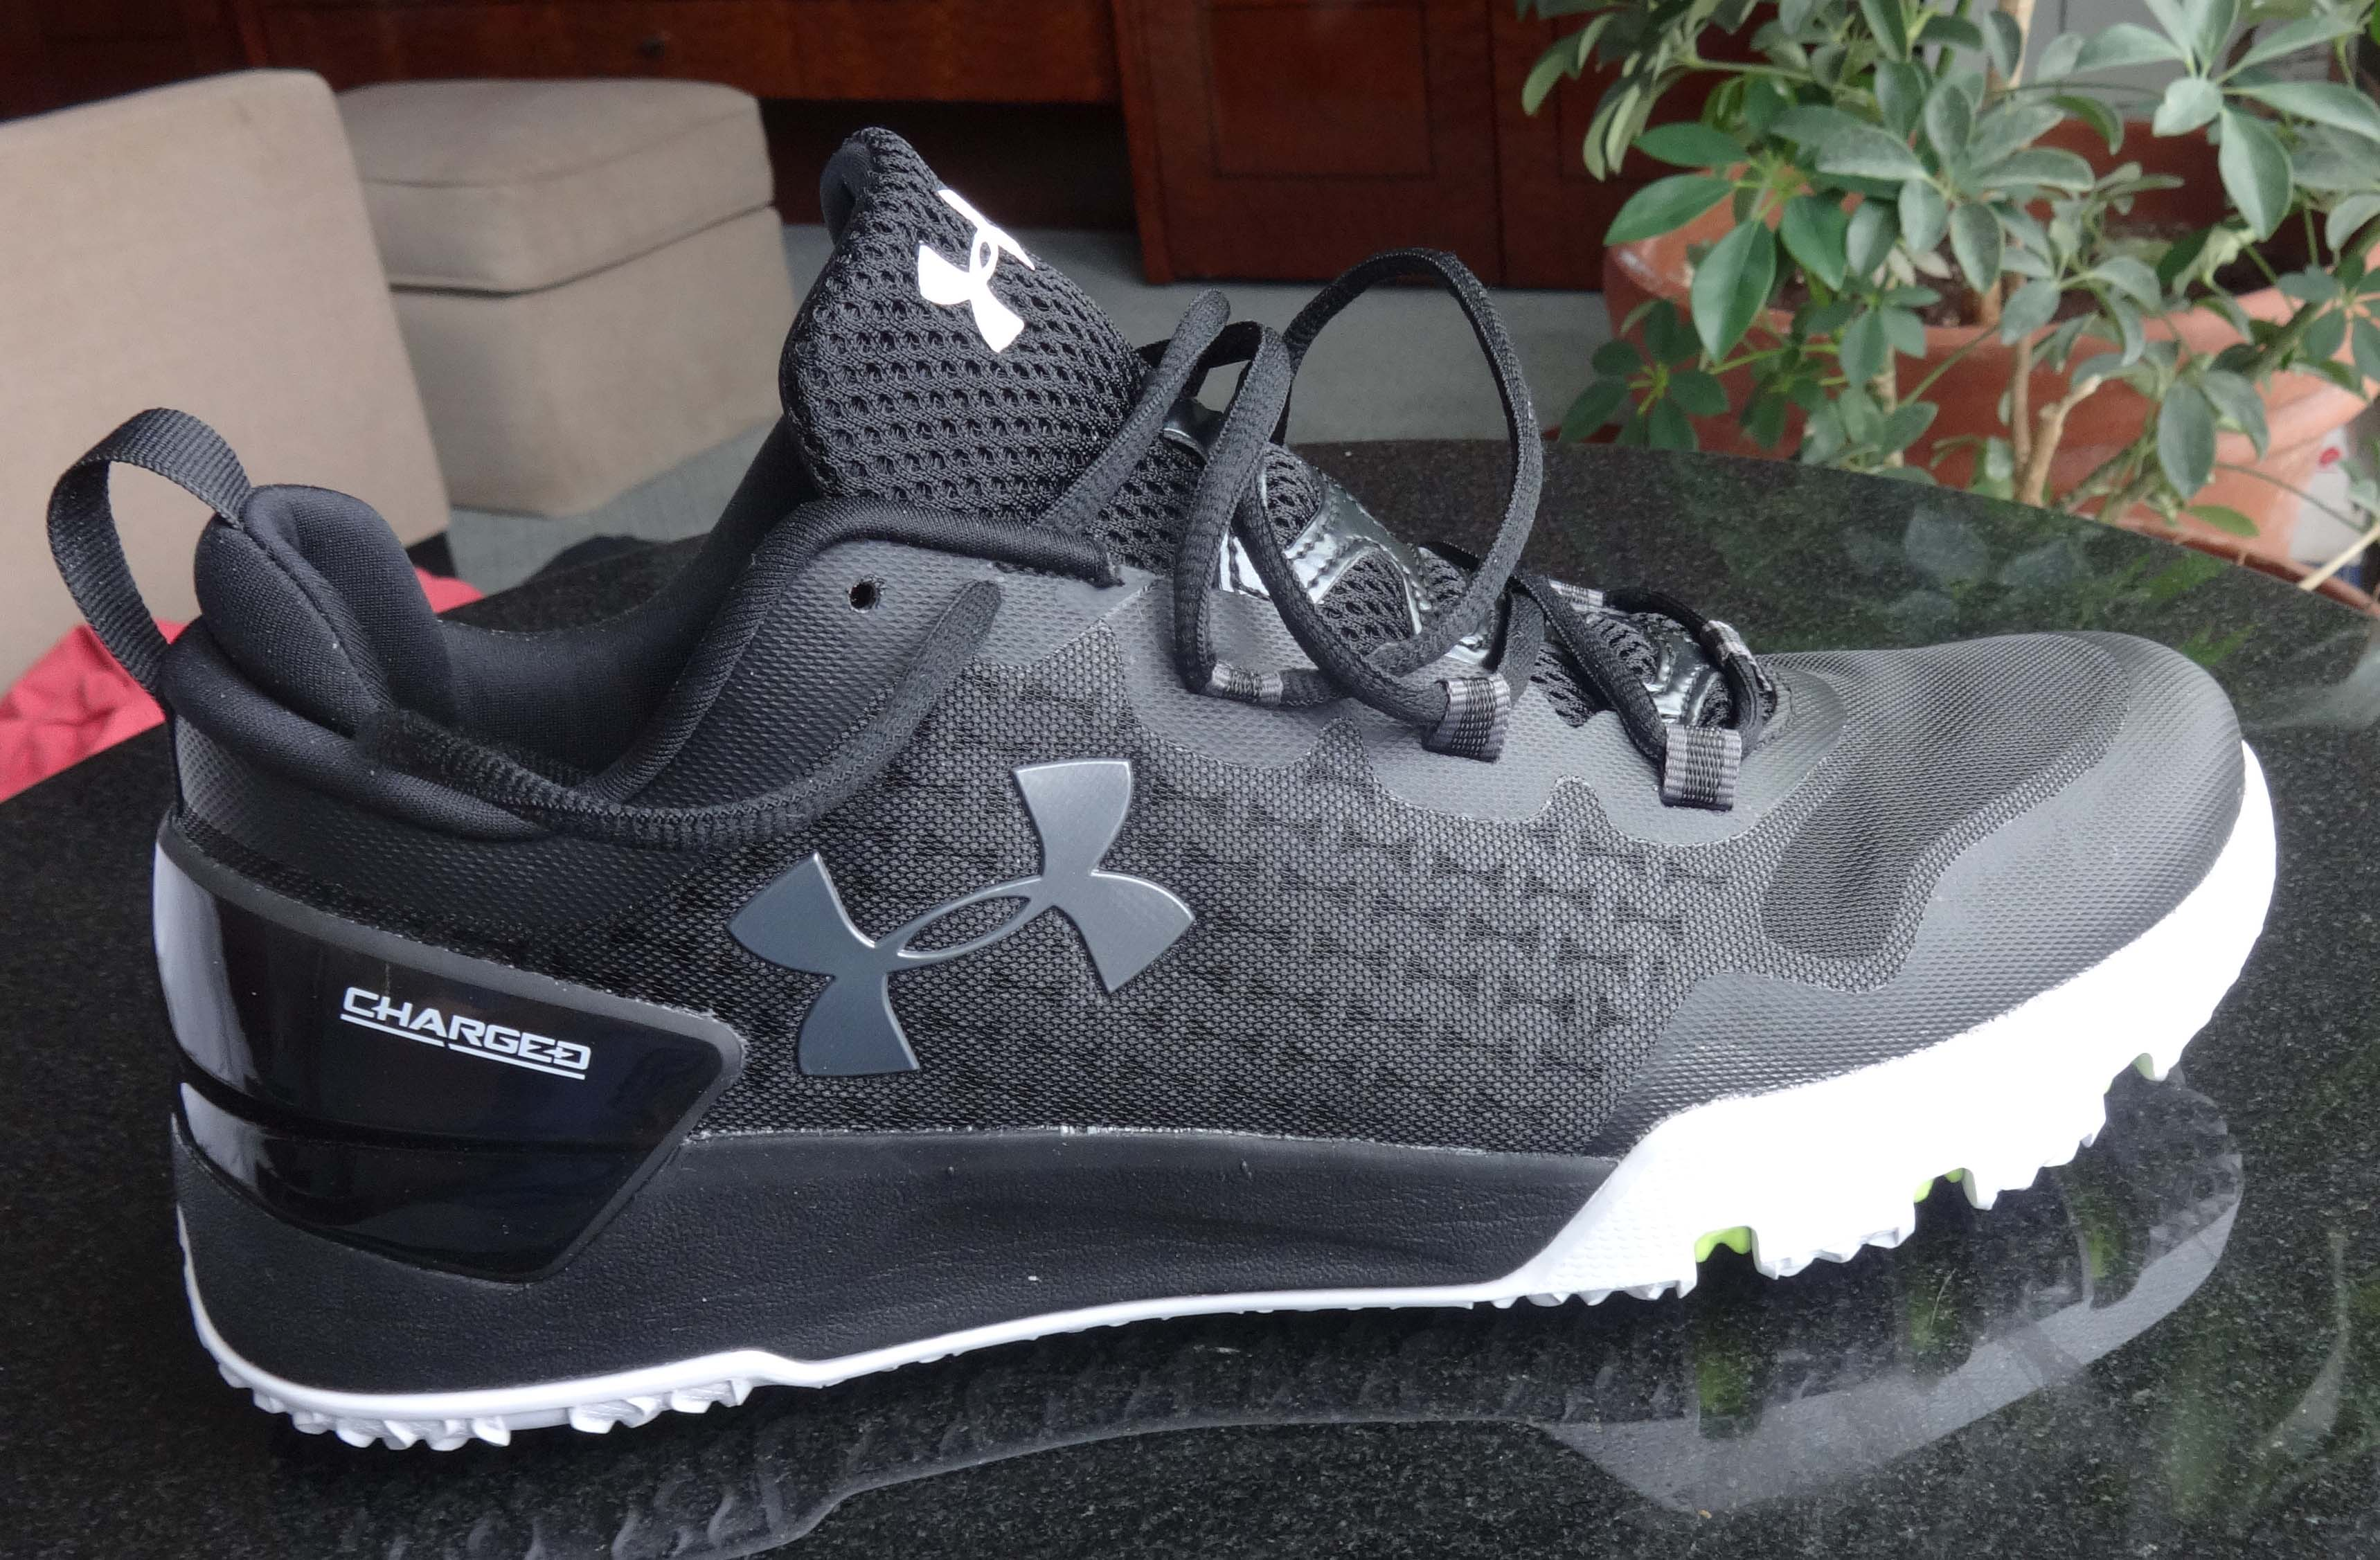 Under Armour trainer shoe